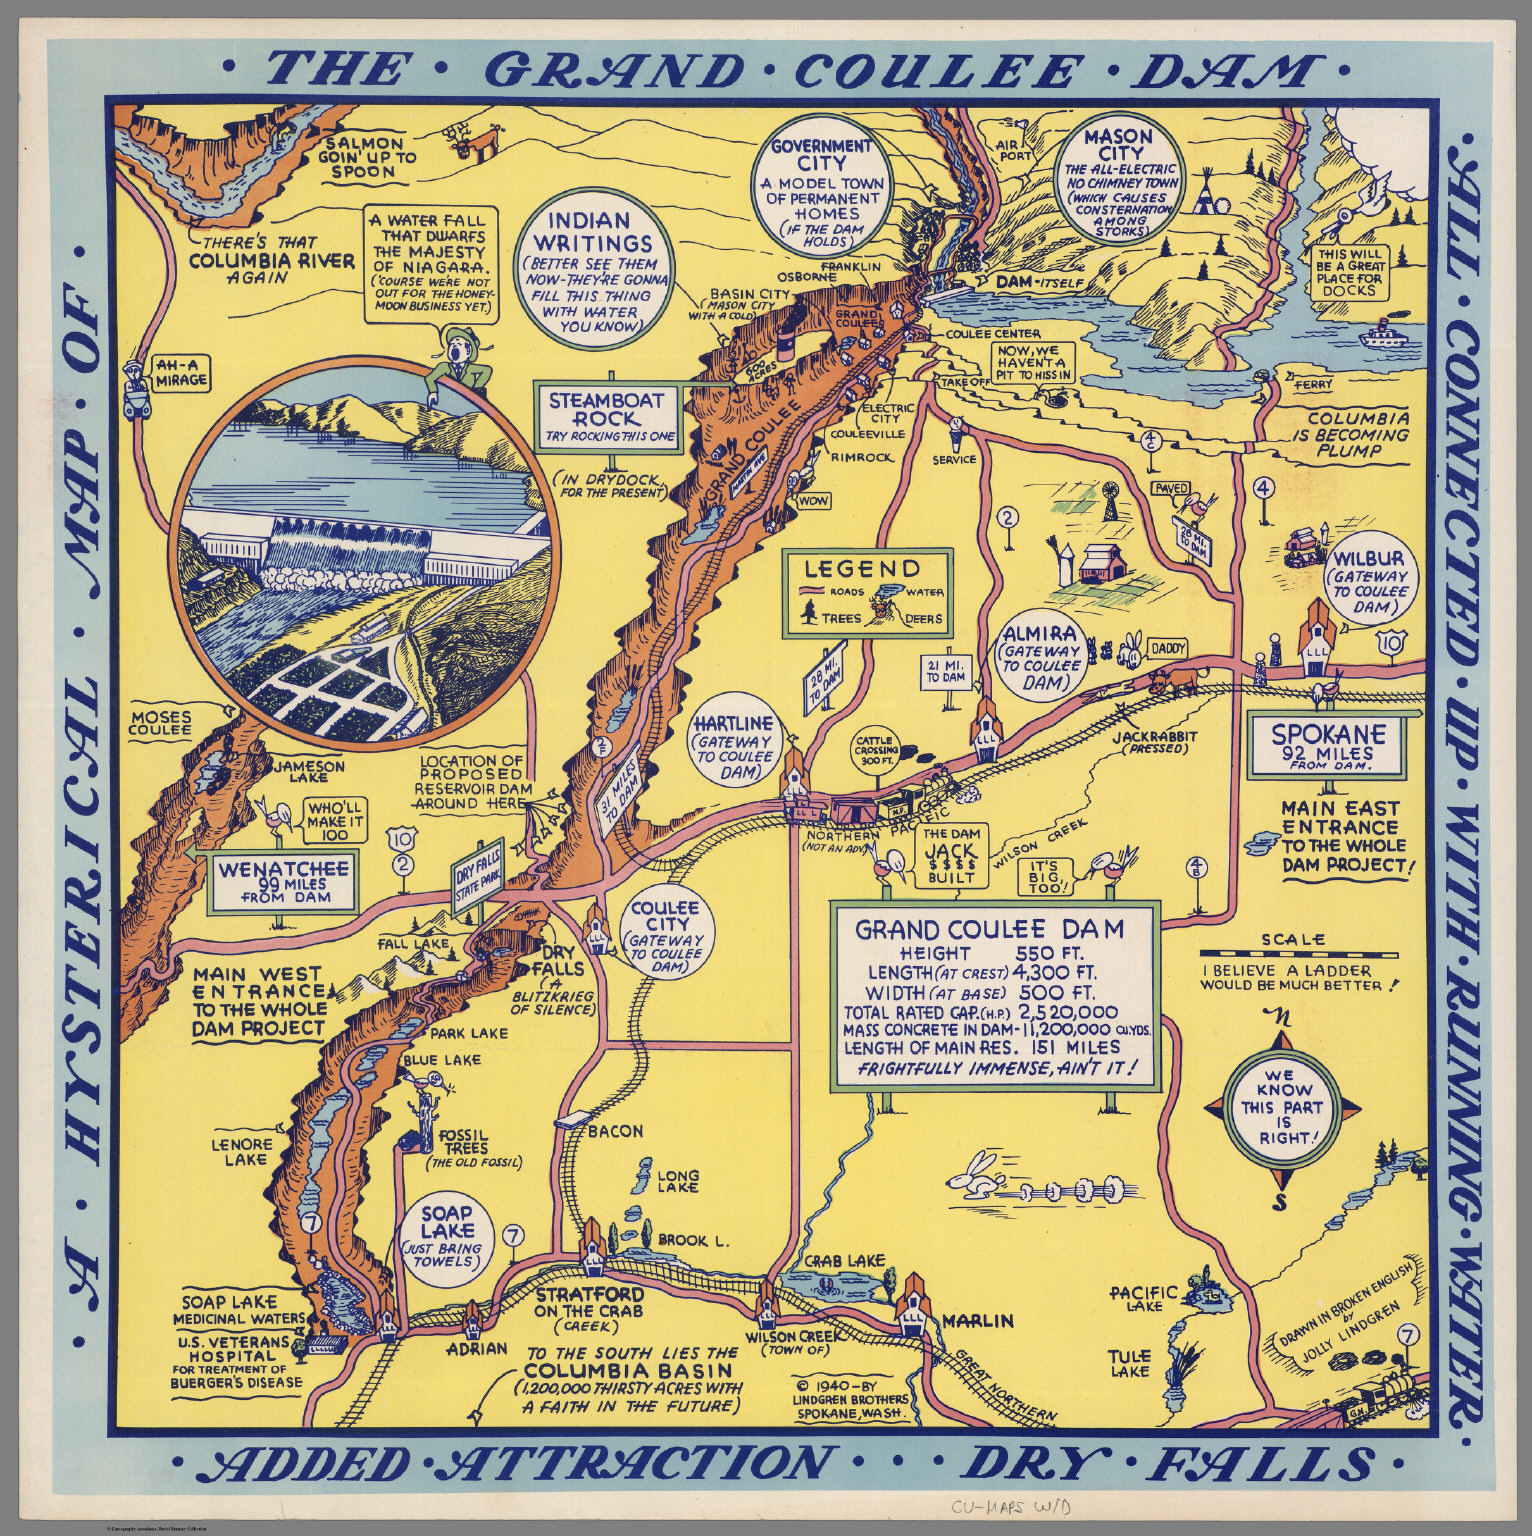 a hysterical map of the grand coulee dam david rumsey